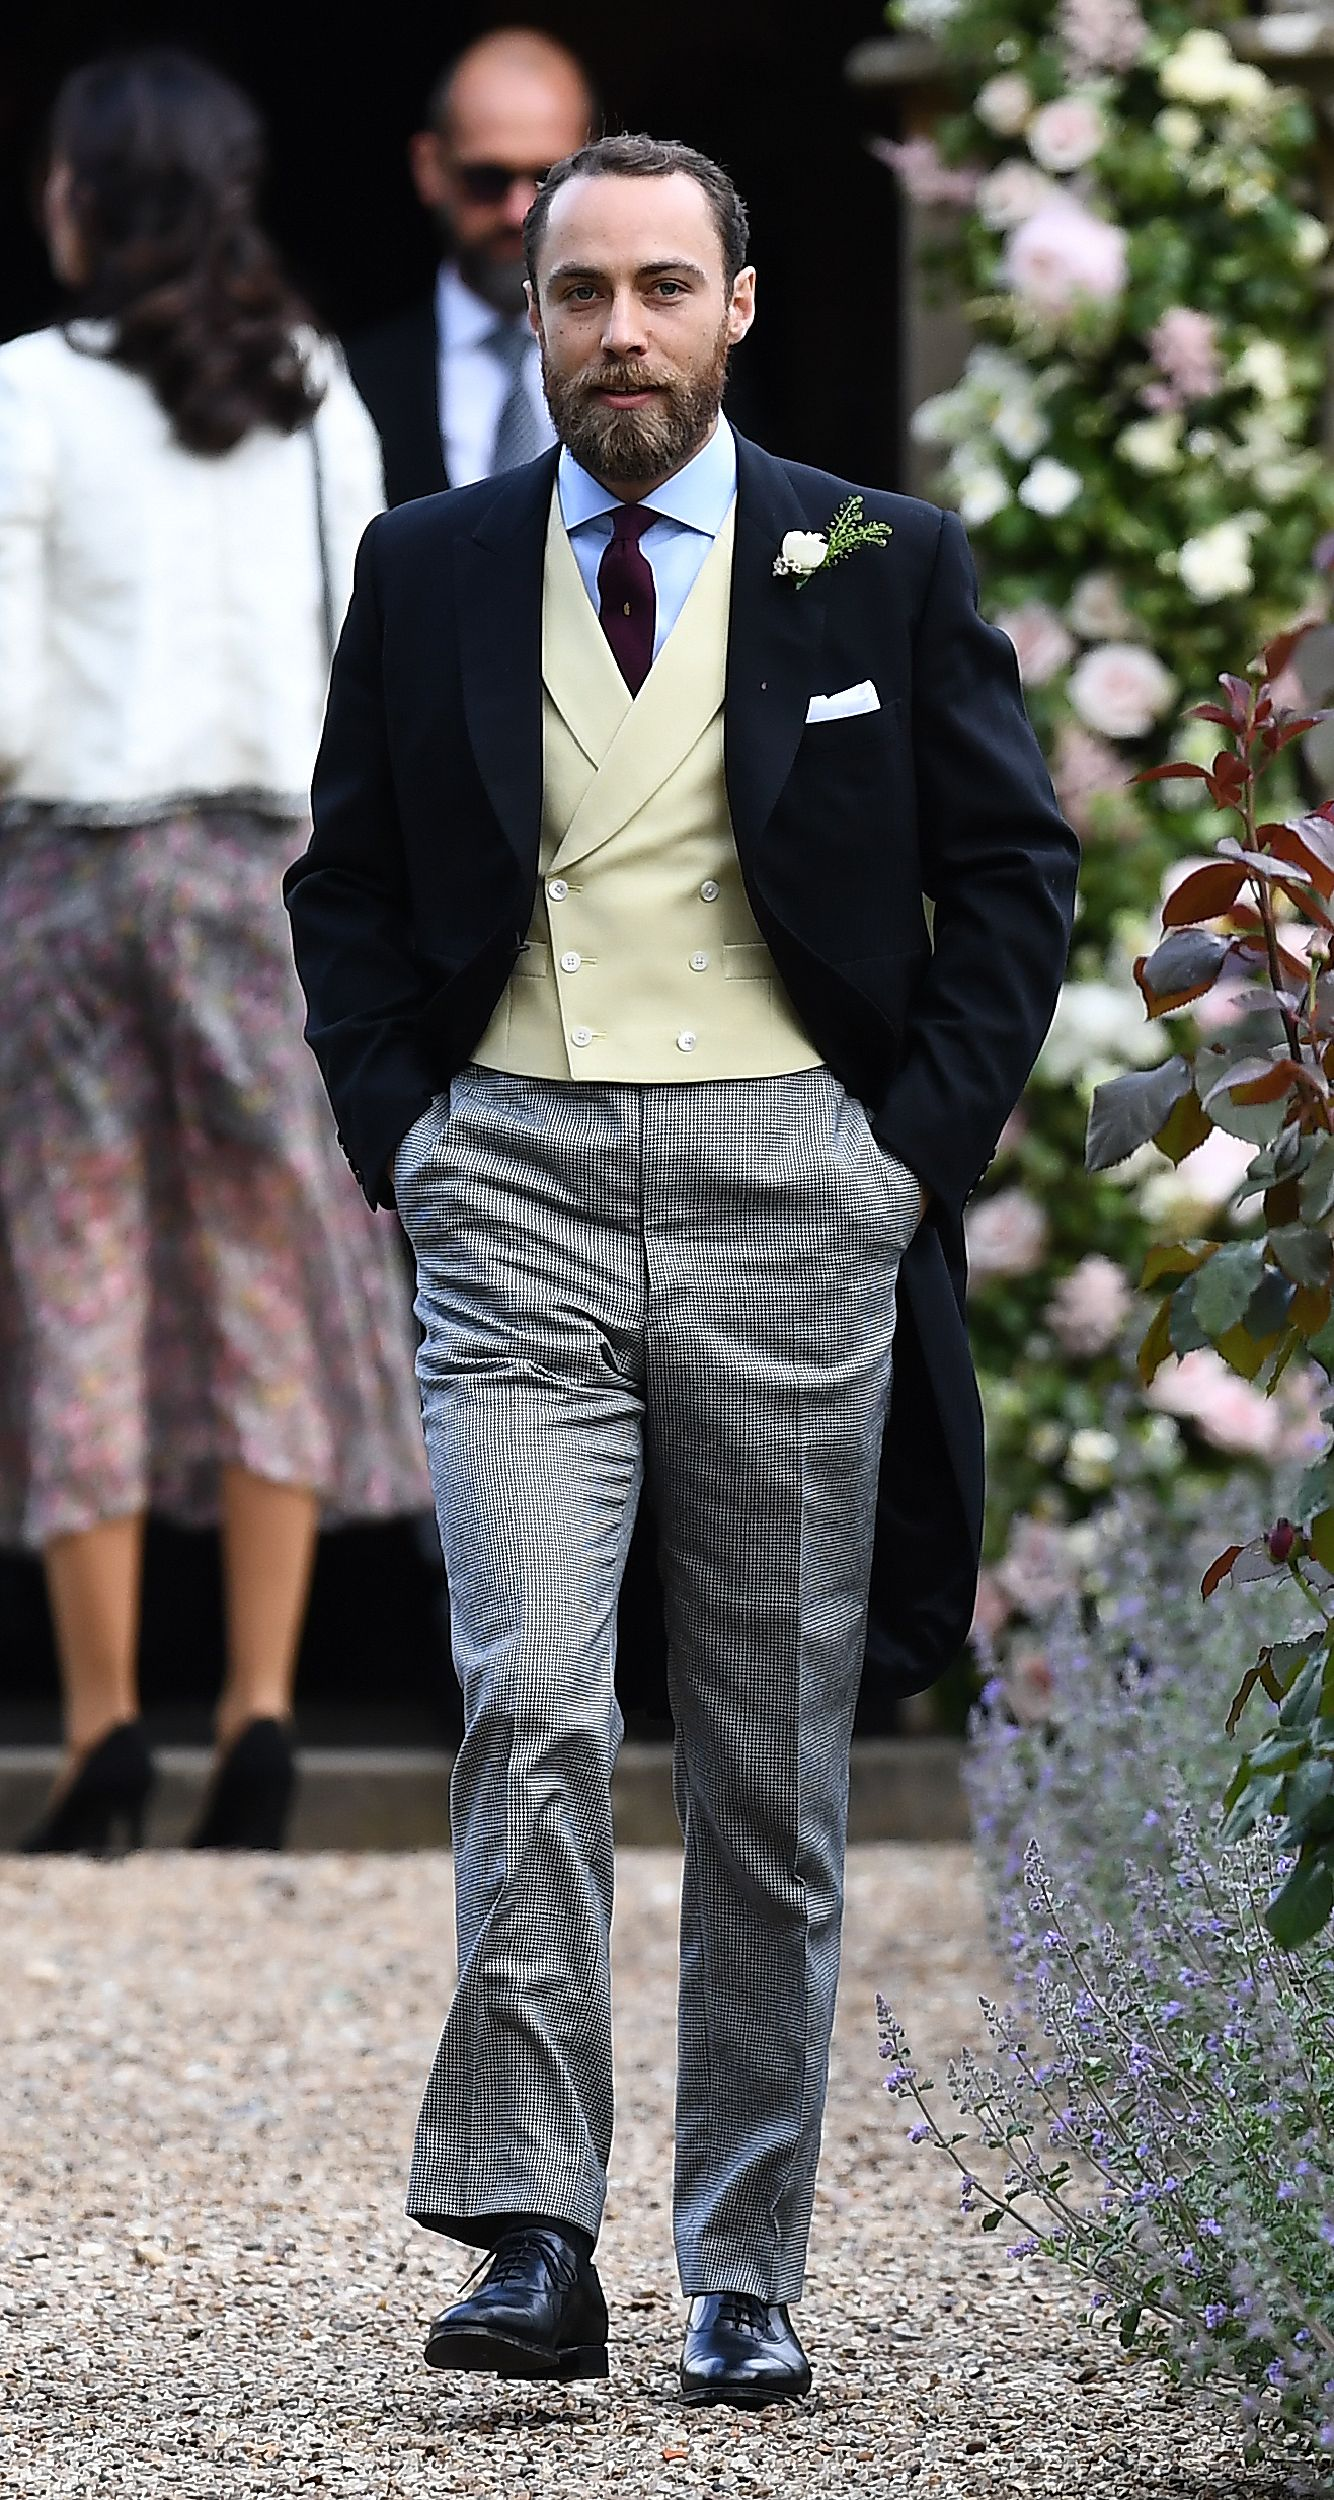 James Middleton Opens Up About Sister Kate Accompanying Him To Therapy